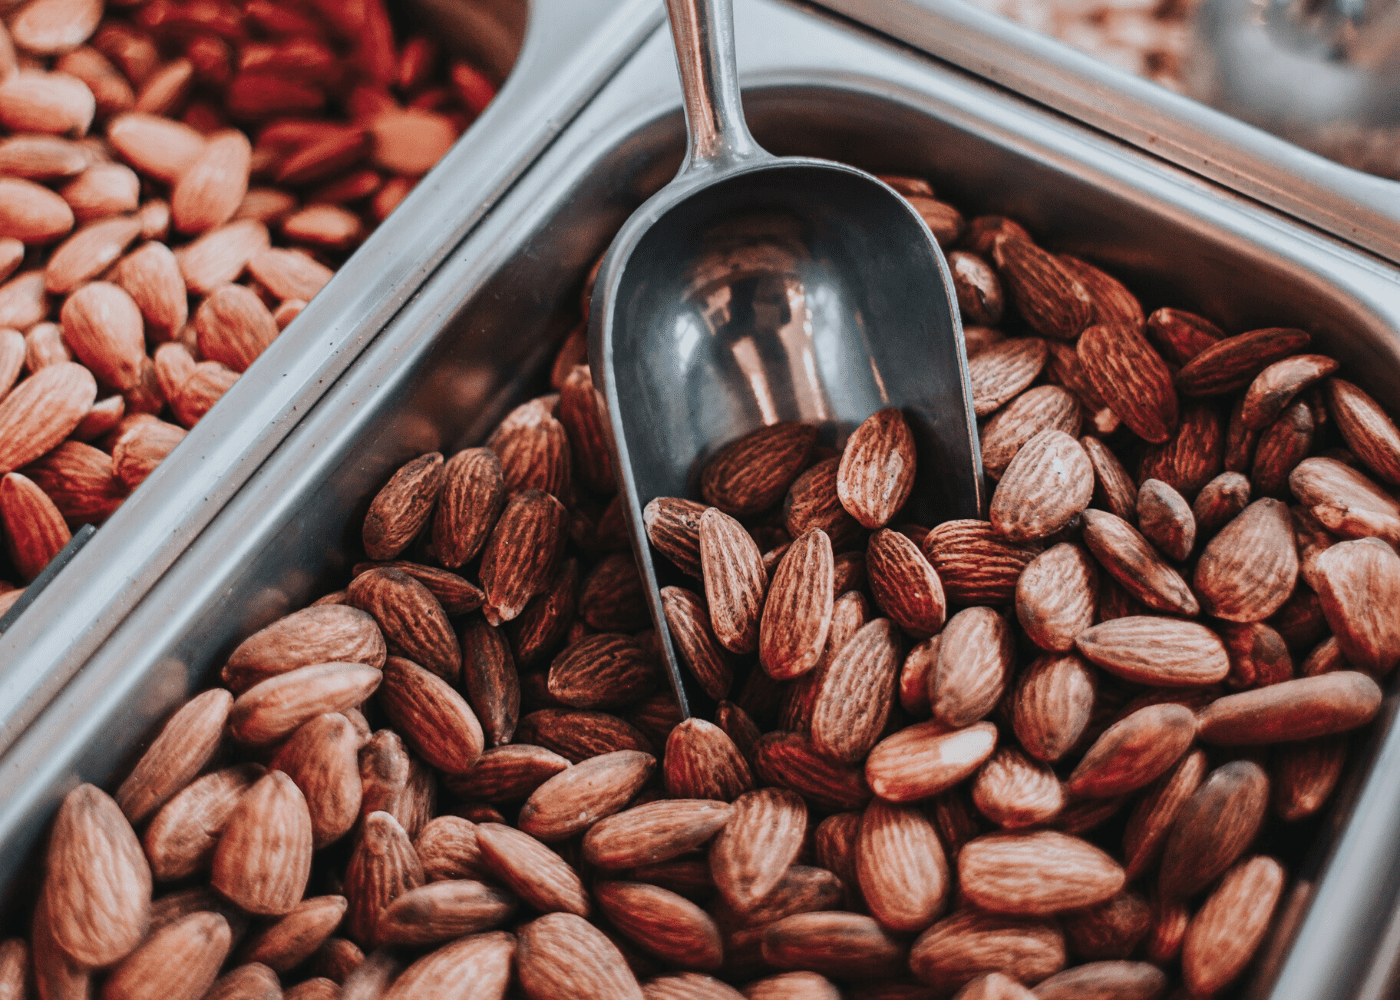 scooping almonds | The best foods to boost your immunity